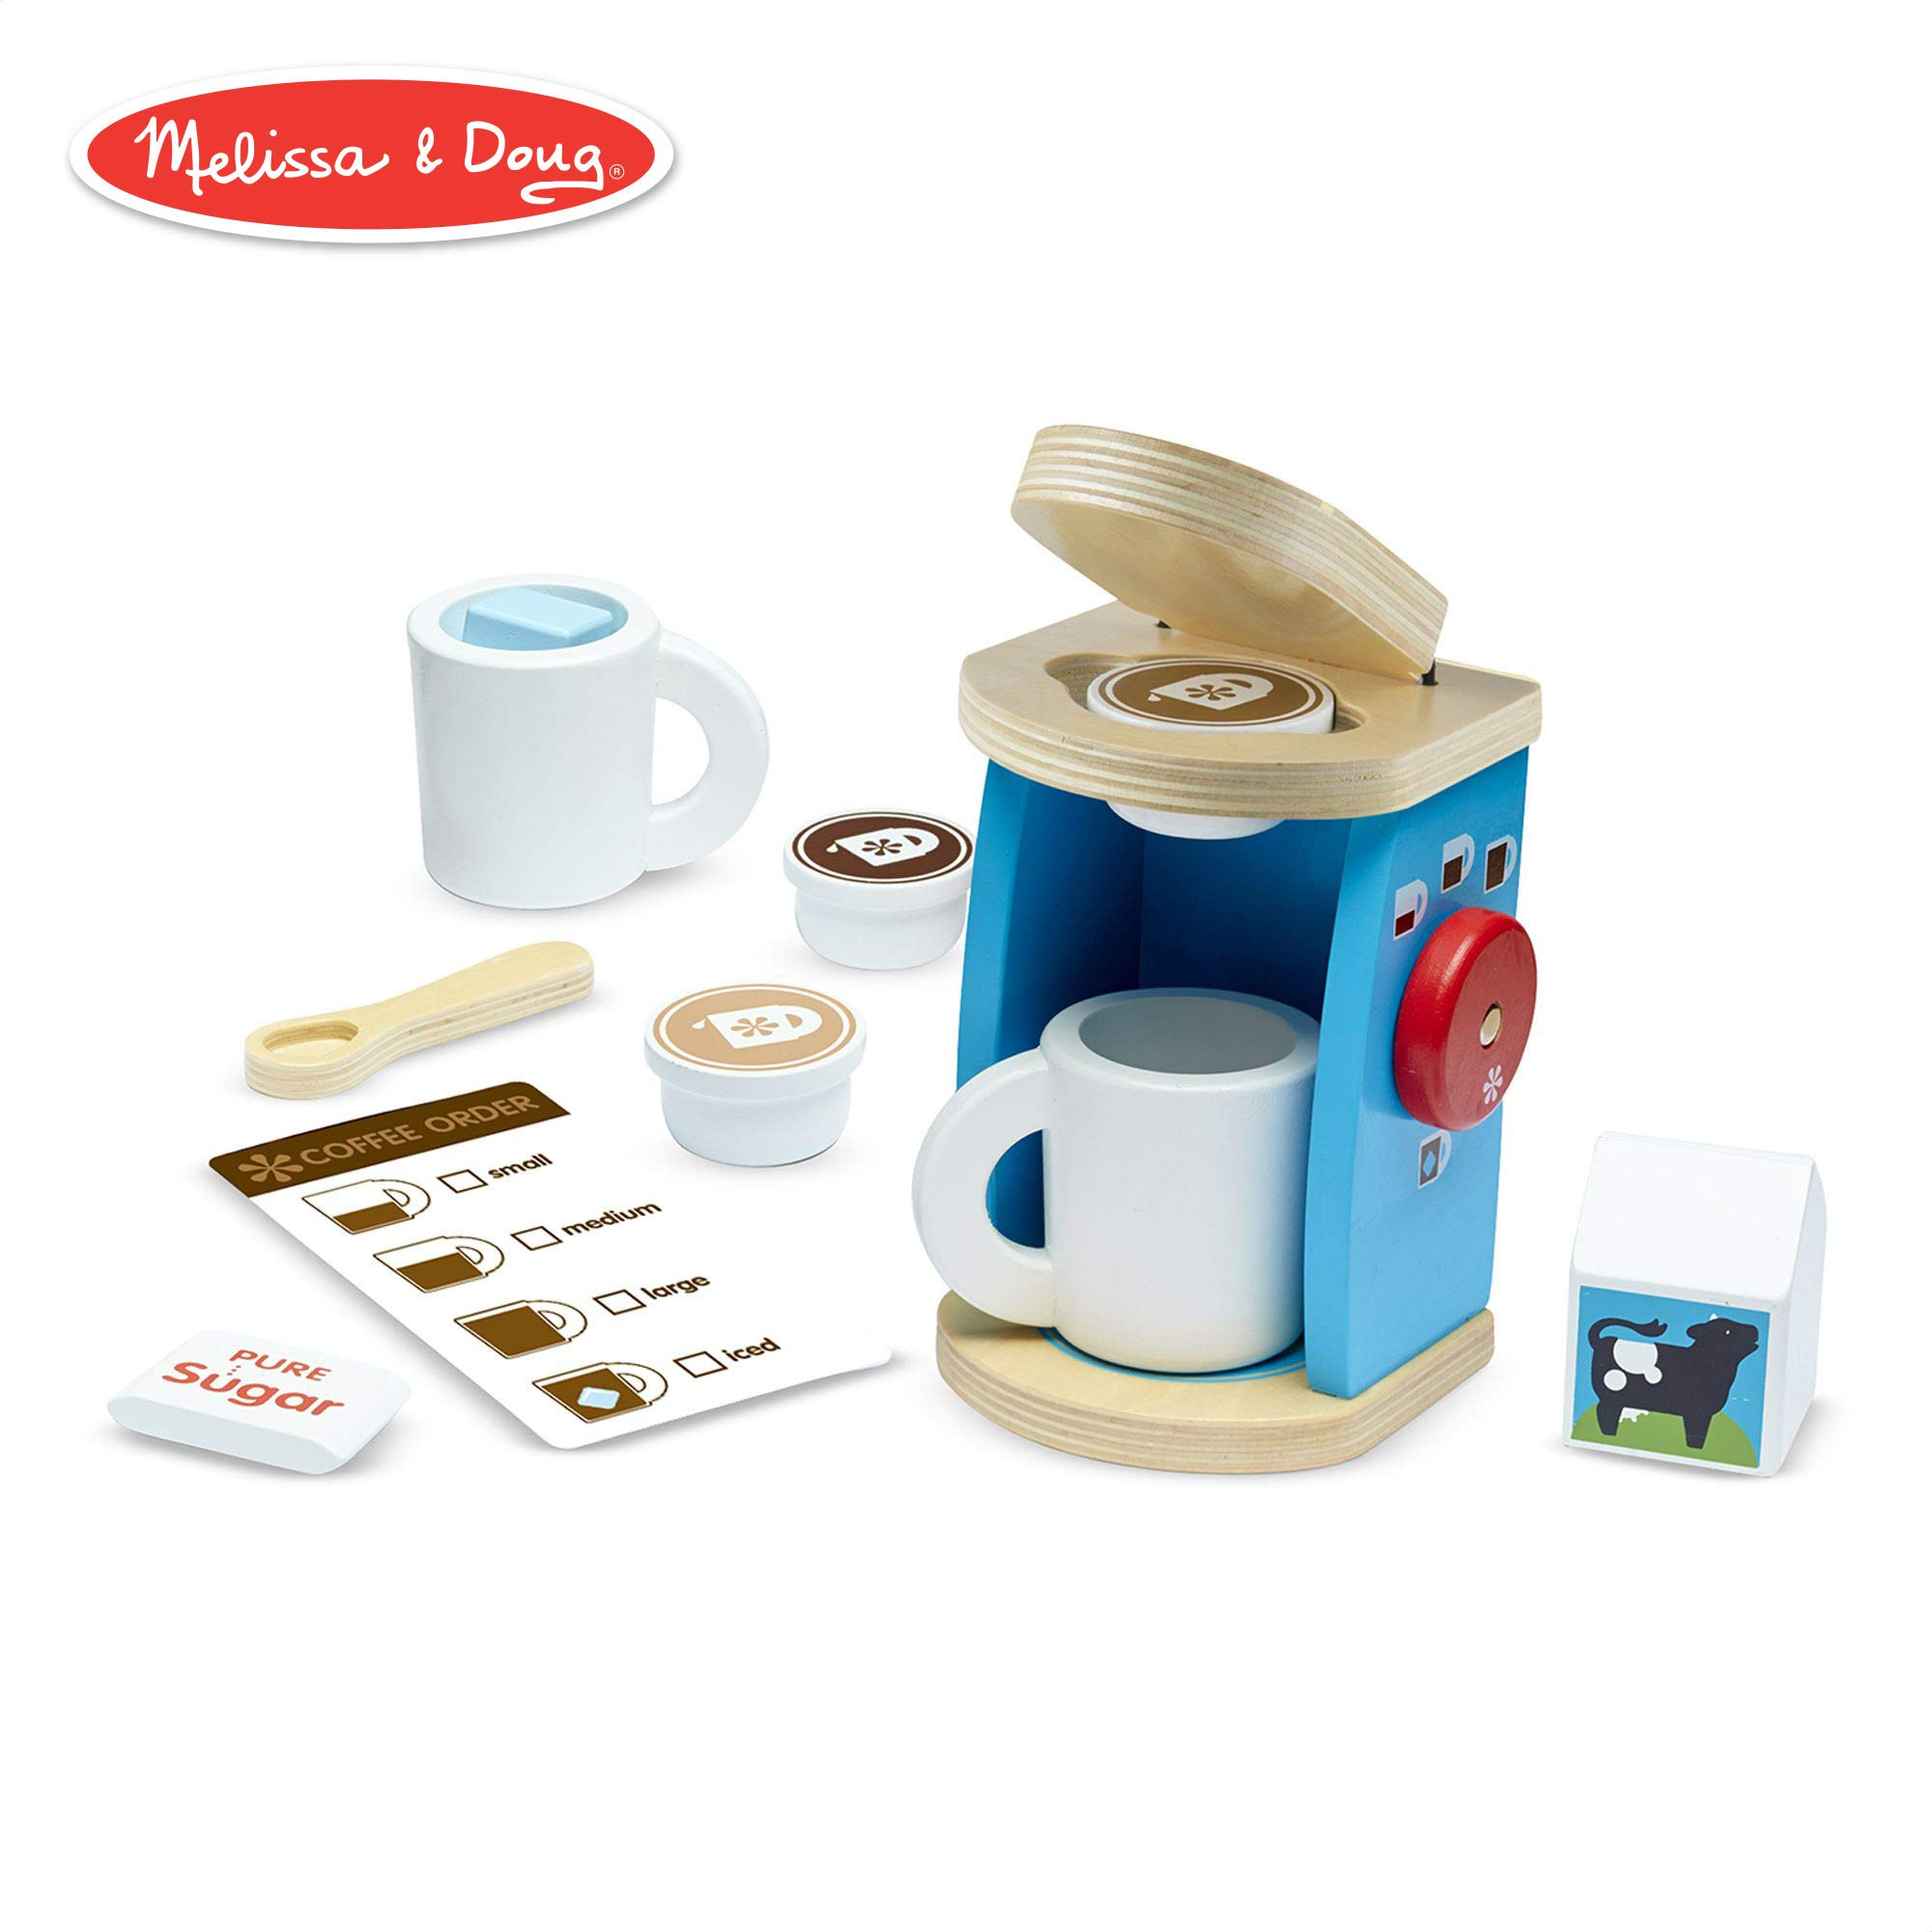 Melissa & Doug Brew & Serve Wooden Coffee Maker Set, Play Kitchen Accessories, Encourages Imaginative Play, 12 Pieces, 10'' H x 13'' W x 4'' L